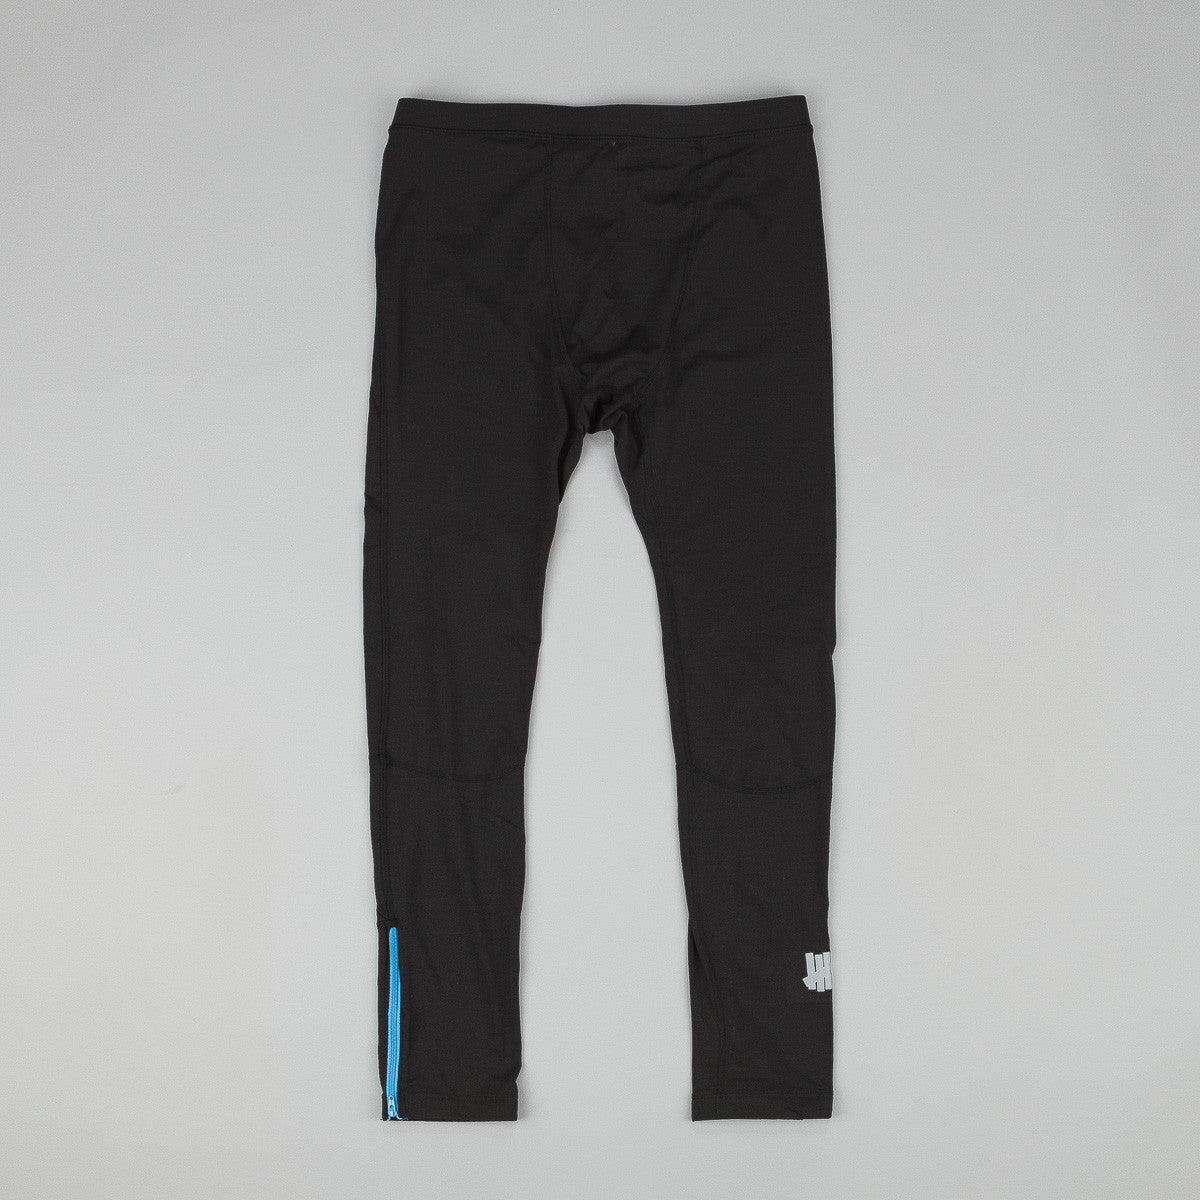 Undefeated Technical Running Pant Black